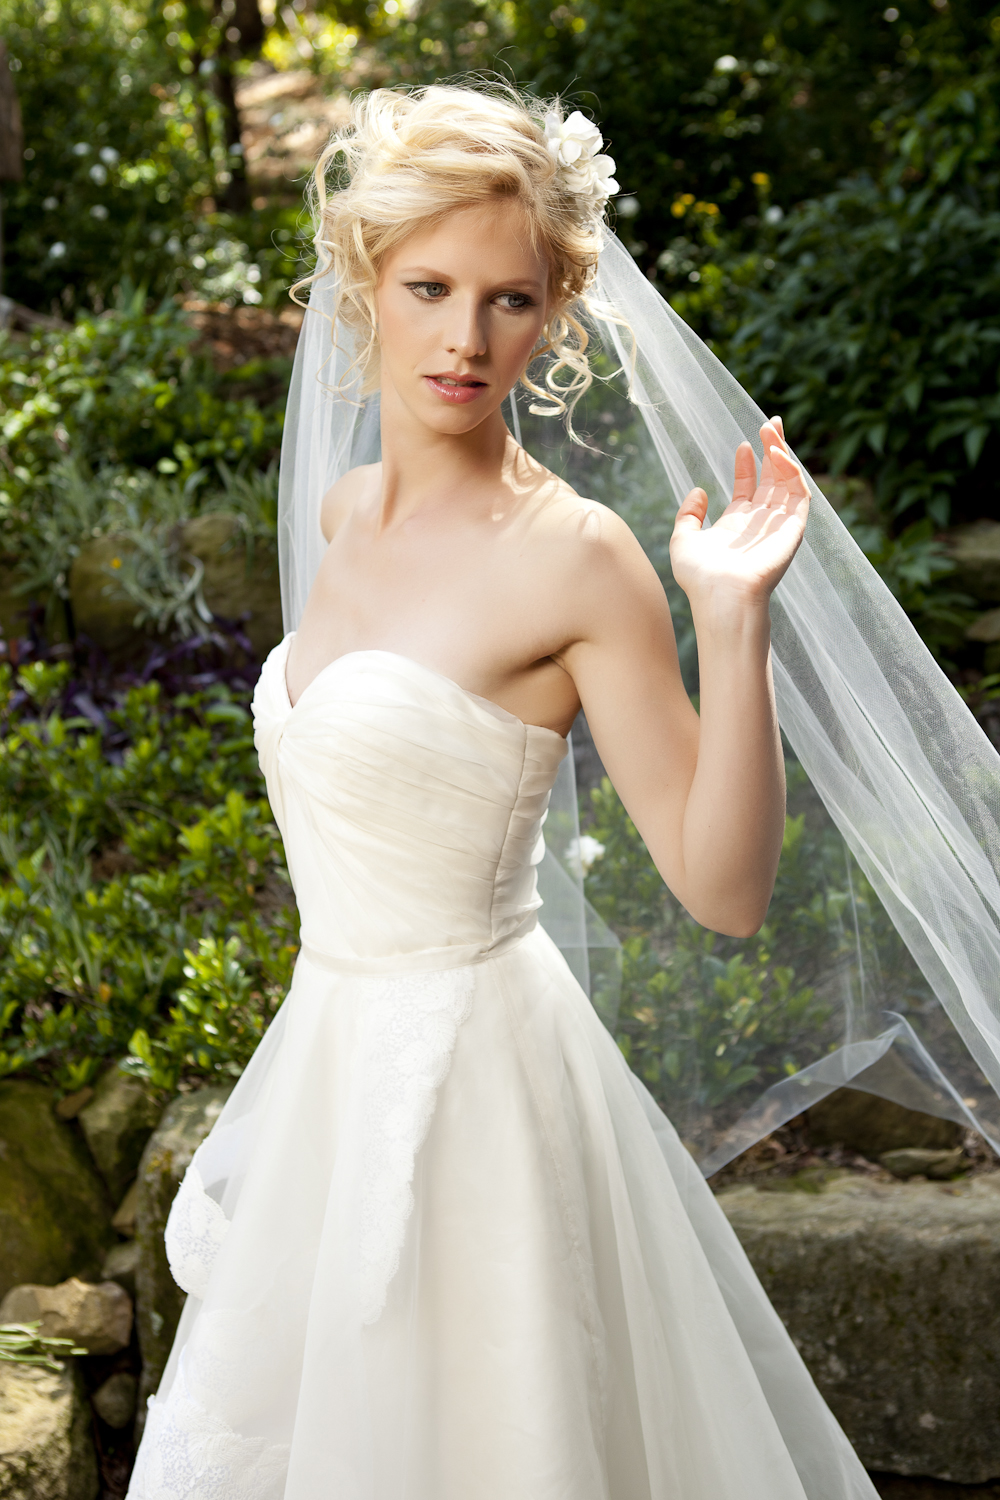 Fern bridal gown_Tanya Anic photography _ Luke Drew 1.jpg